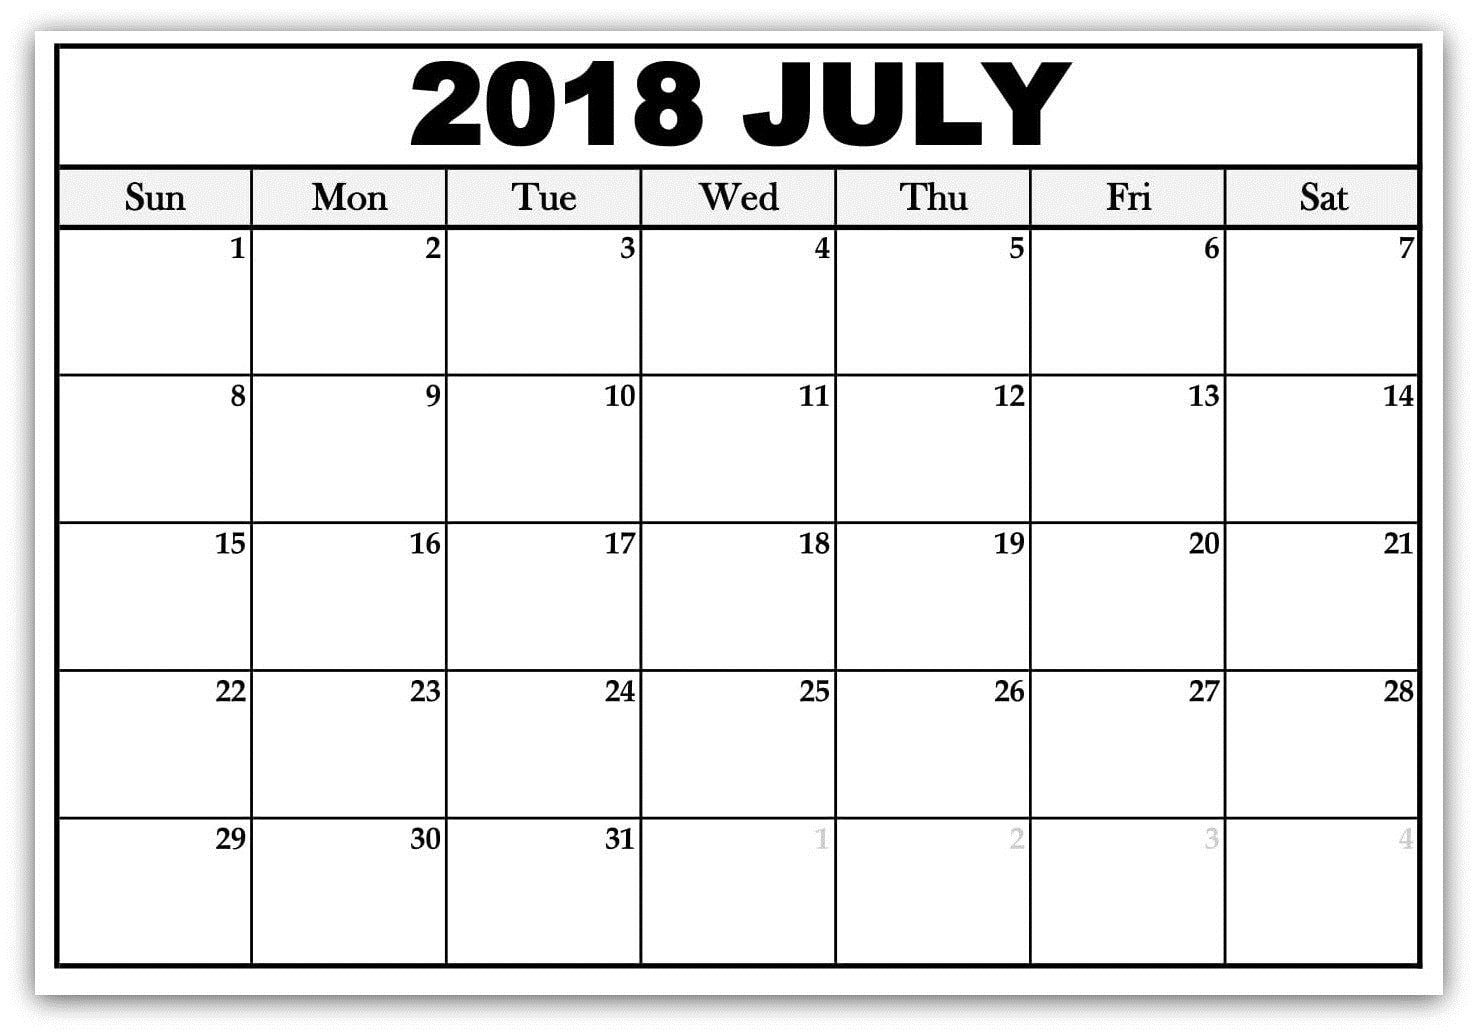 image about Printable Word Calendar identified as Free of charge Printable Phrase Calendar July 2018 Estimate Pics High definition No cost